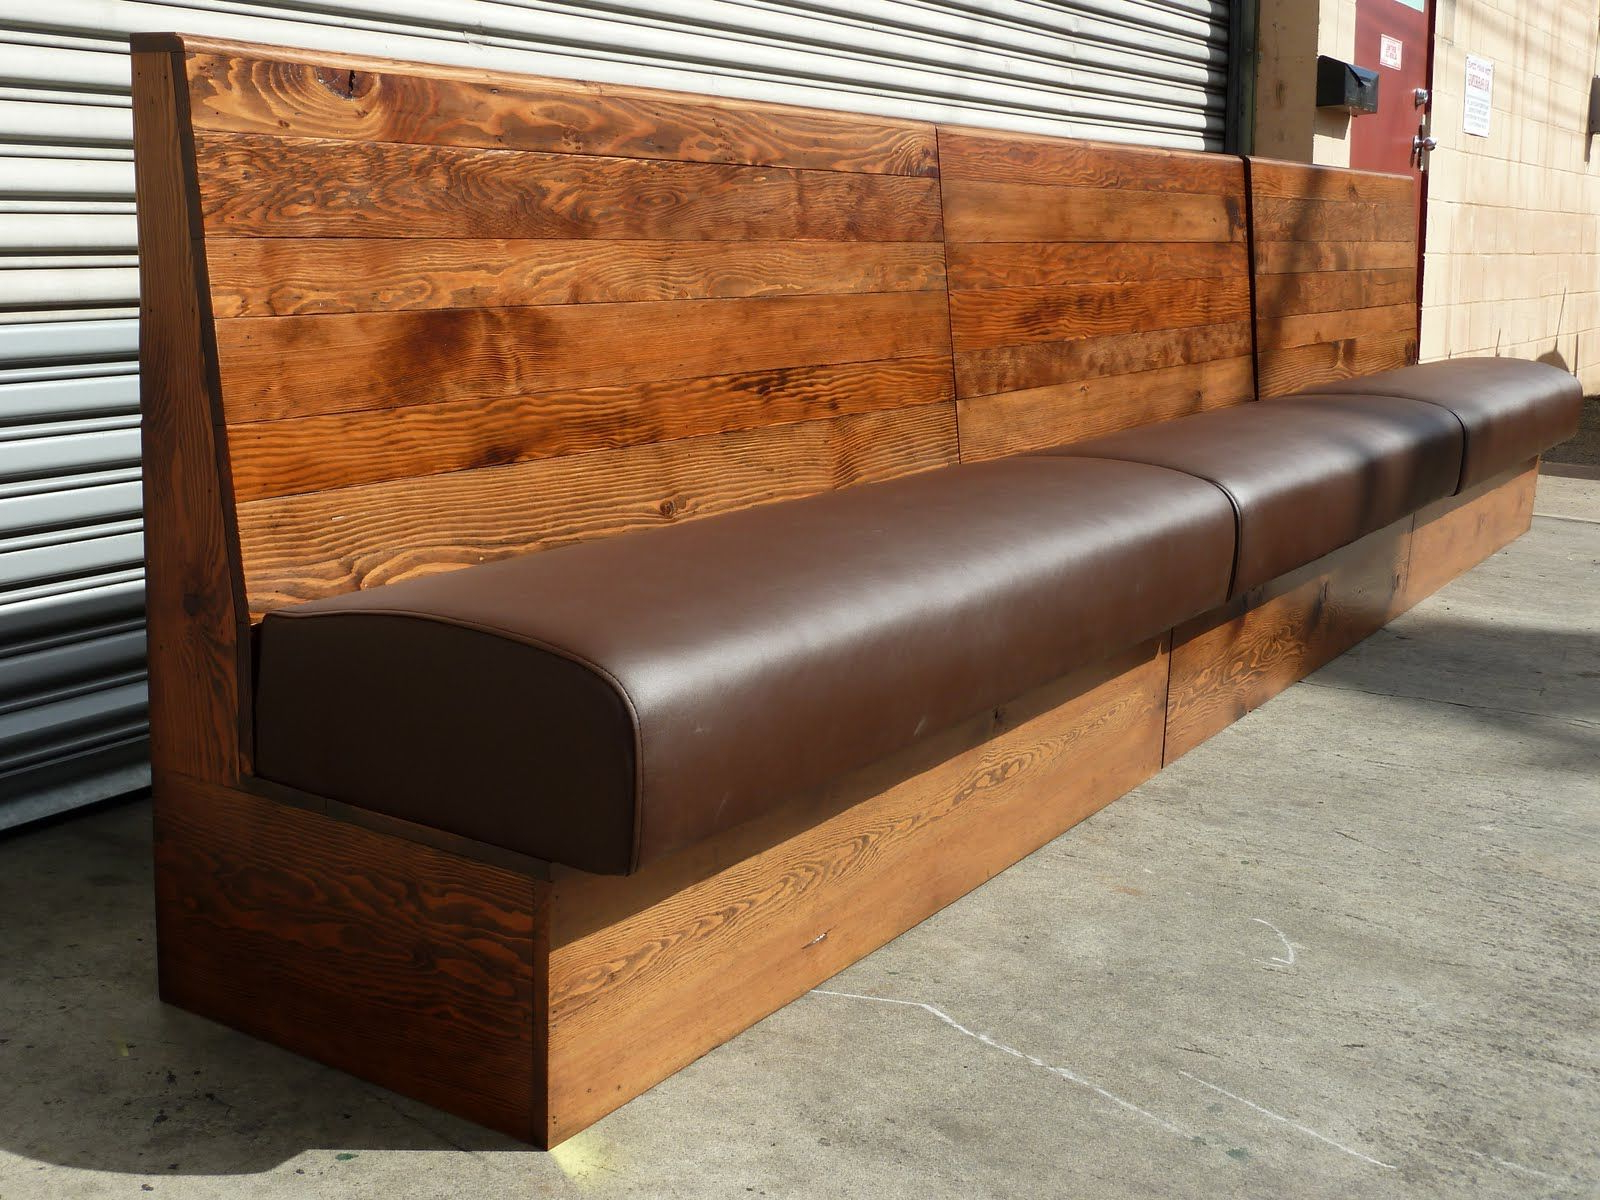 Bench Restaurant Ffdn Wonderful Banquette Bench for Home Furniture Ideas Wooden Banquette